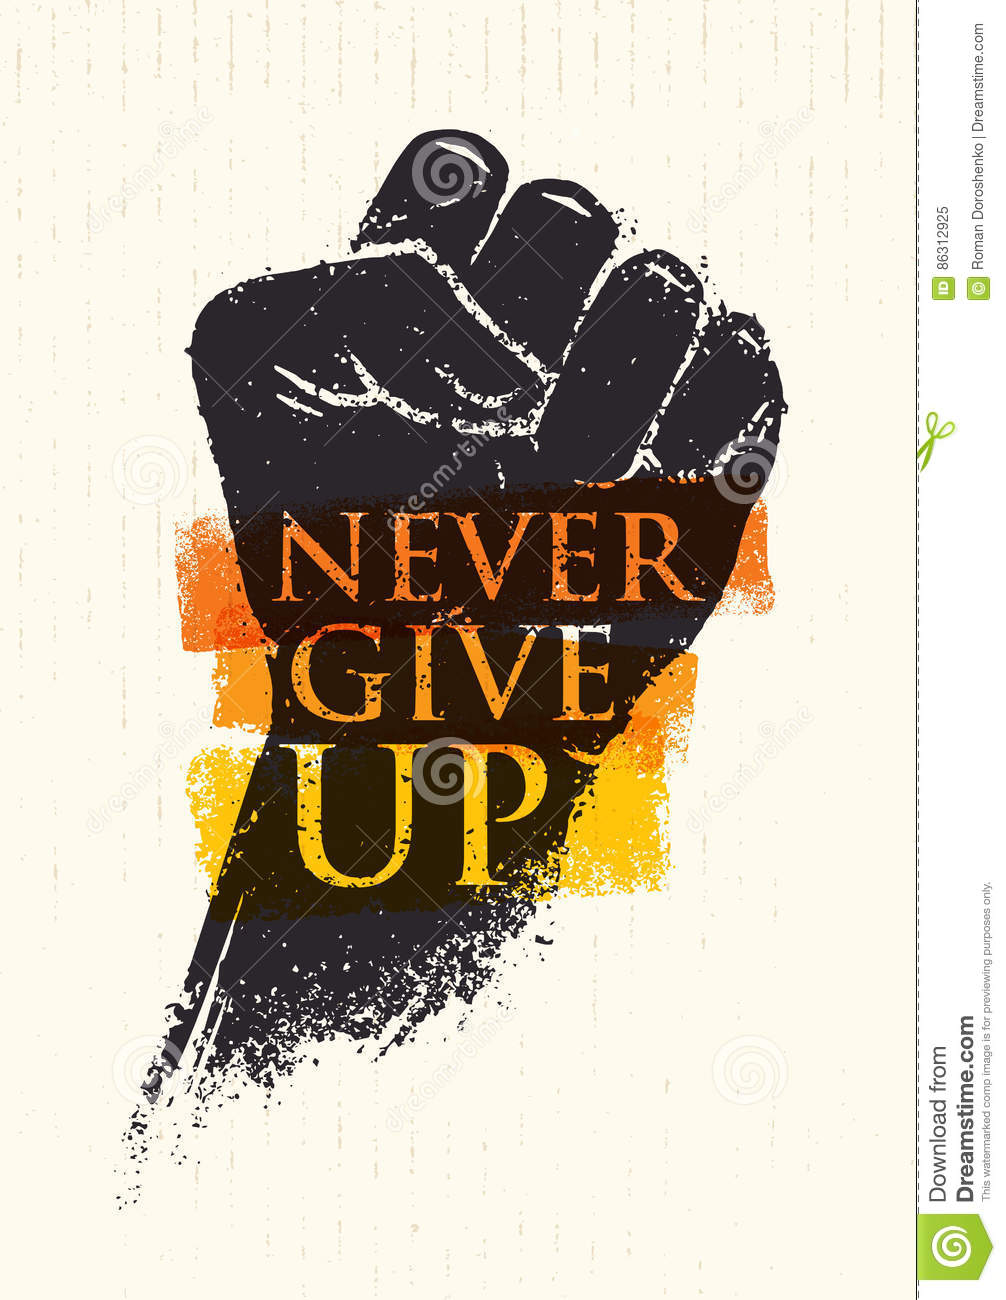 Give The Elements Of Art : Never give up motivation poster concept creative grunge